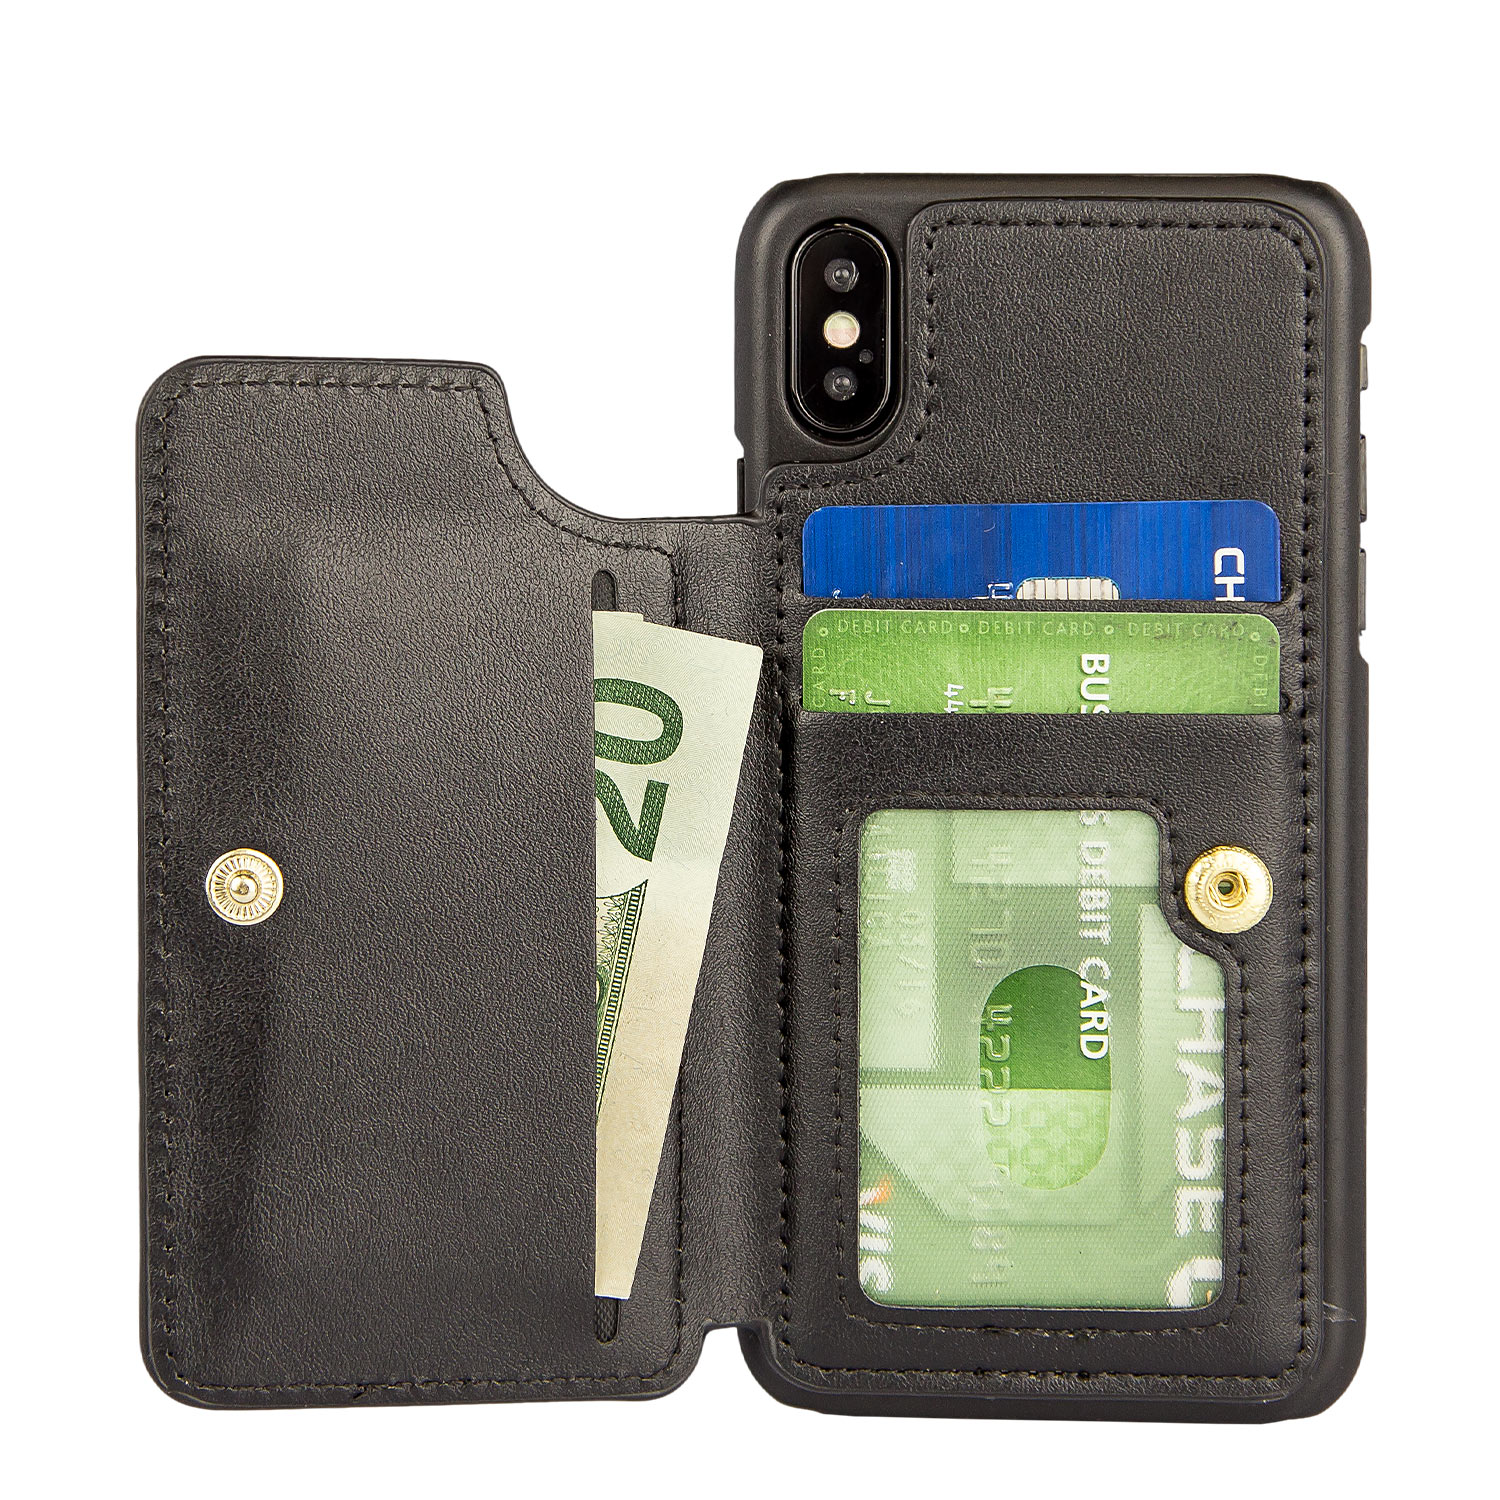 new products 1e16c 90b1f iPhone X Case - Zizo Premium Wallet Case with PC and Wallet Back [ All In  One Slim Leather Folio] with ID Card Slots and Snap Closure